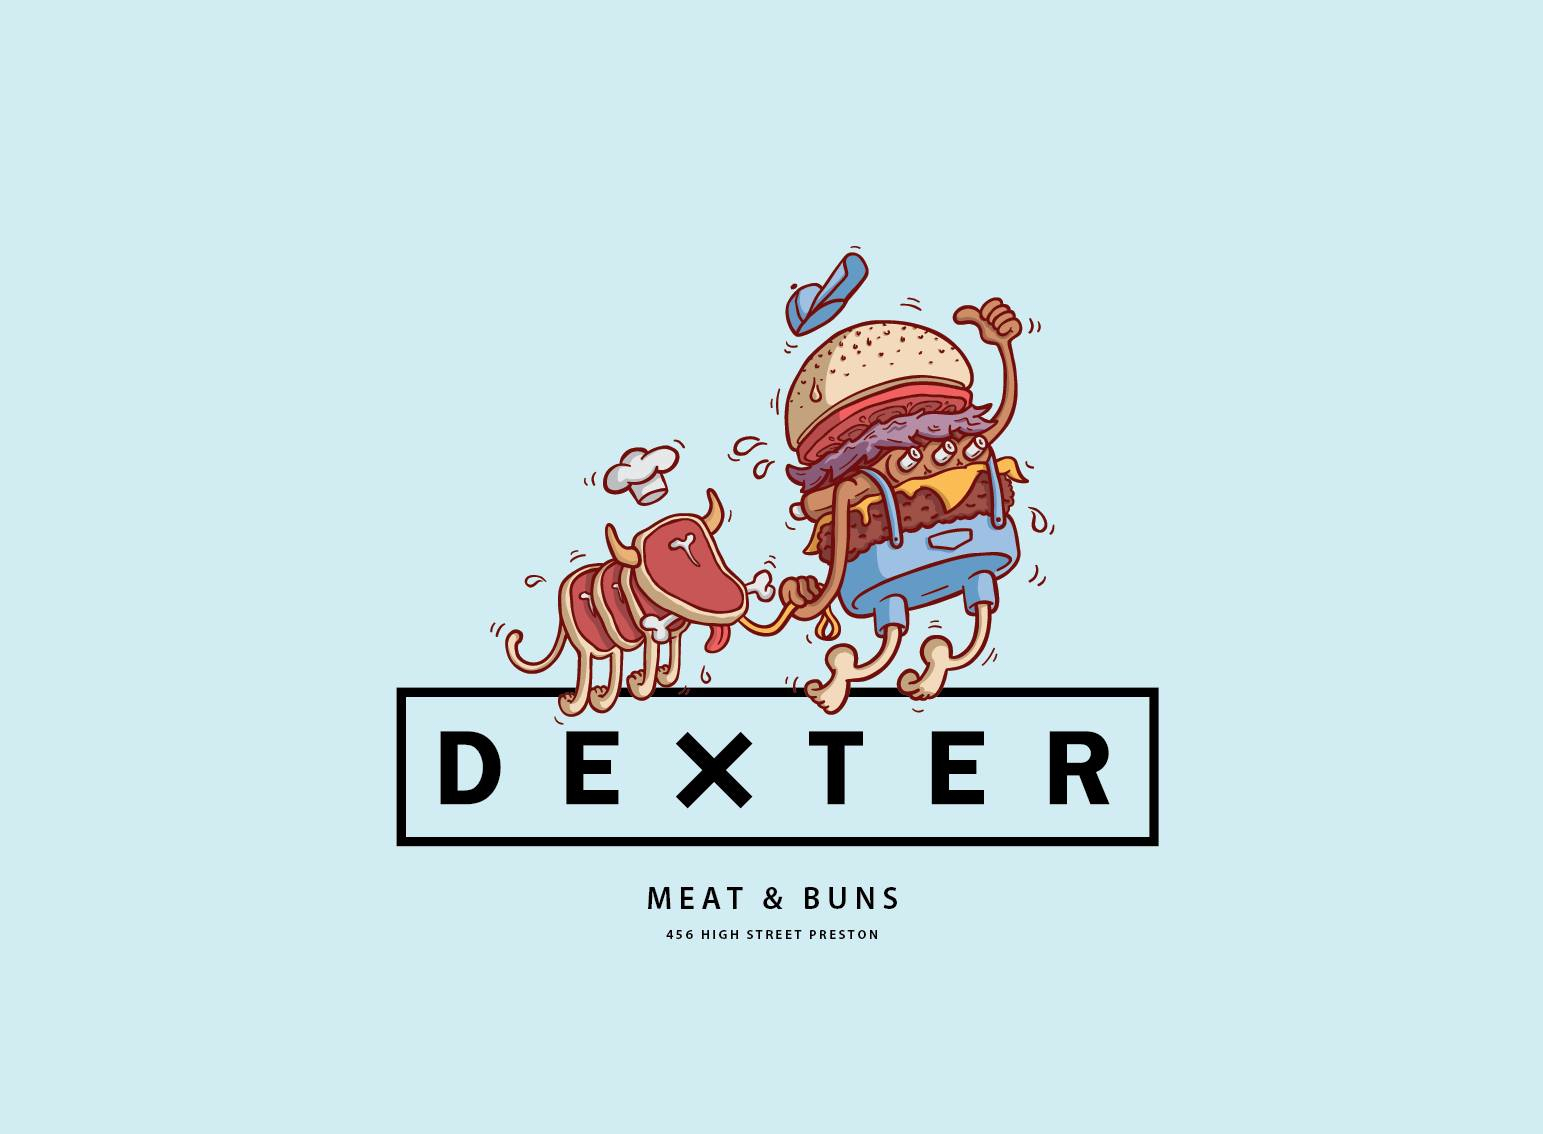 Dexter - Meat and Buns